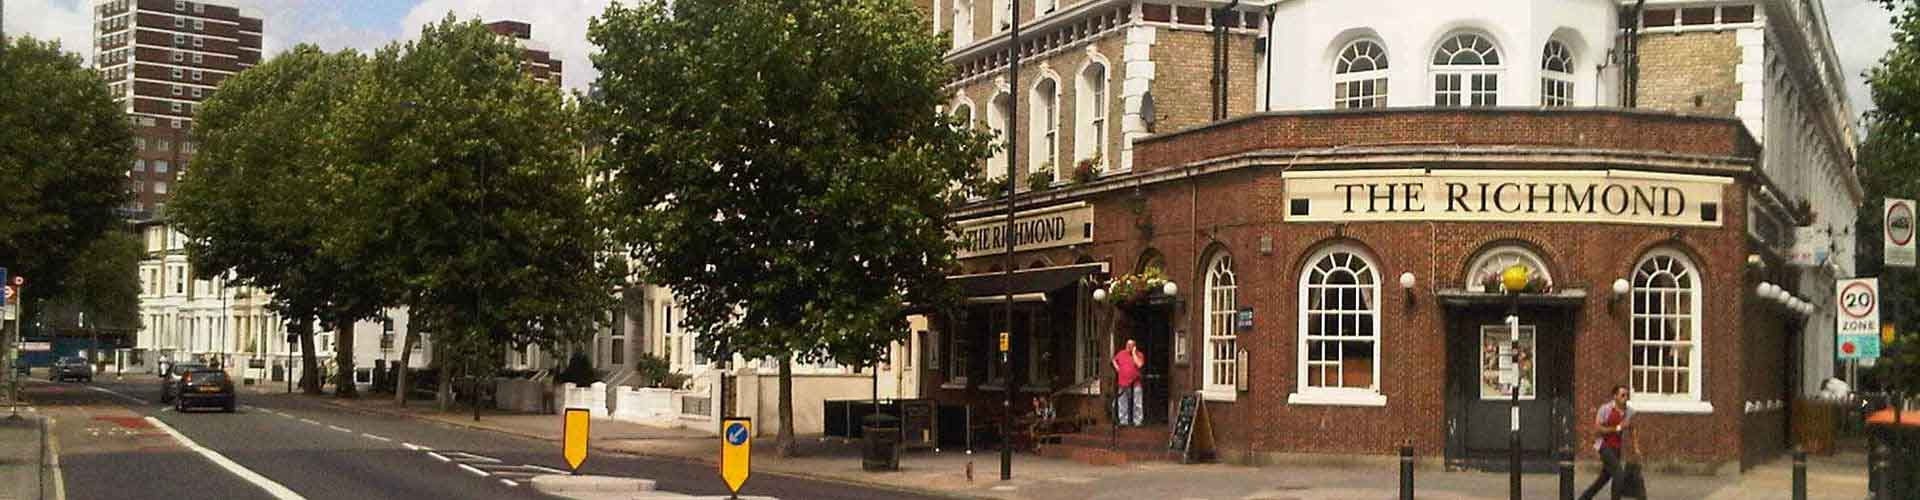 London – Hostels in Borough of Hammersmith and Fulham. Maps of London, Photos and Reviews for each Hostel in London.